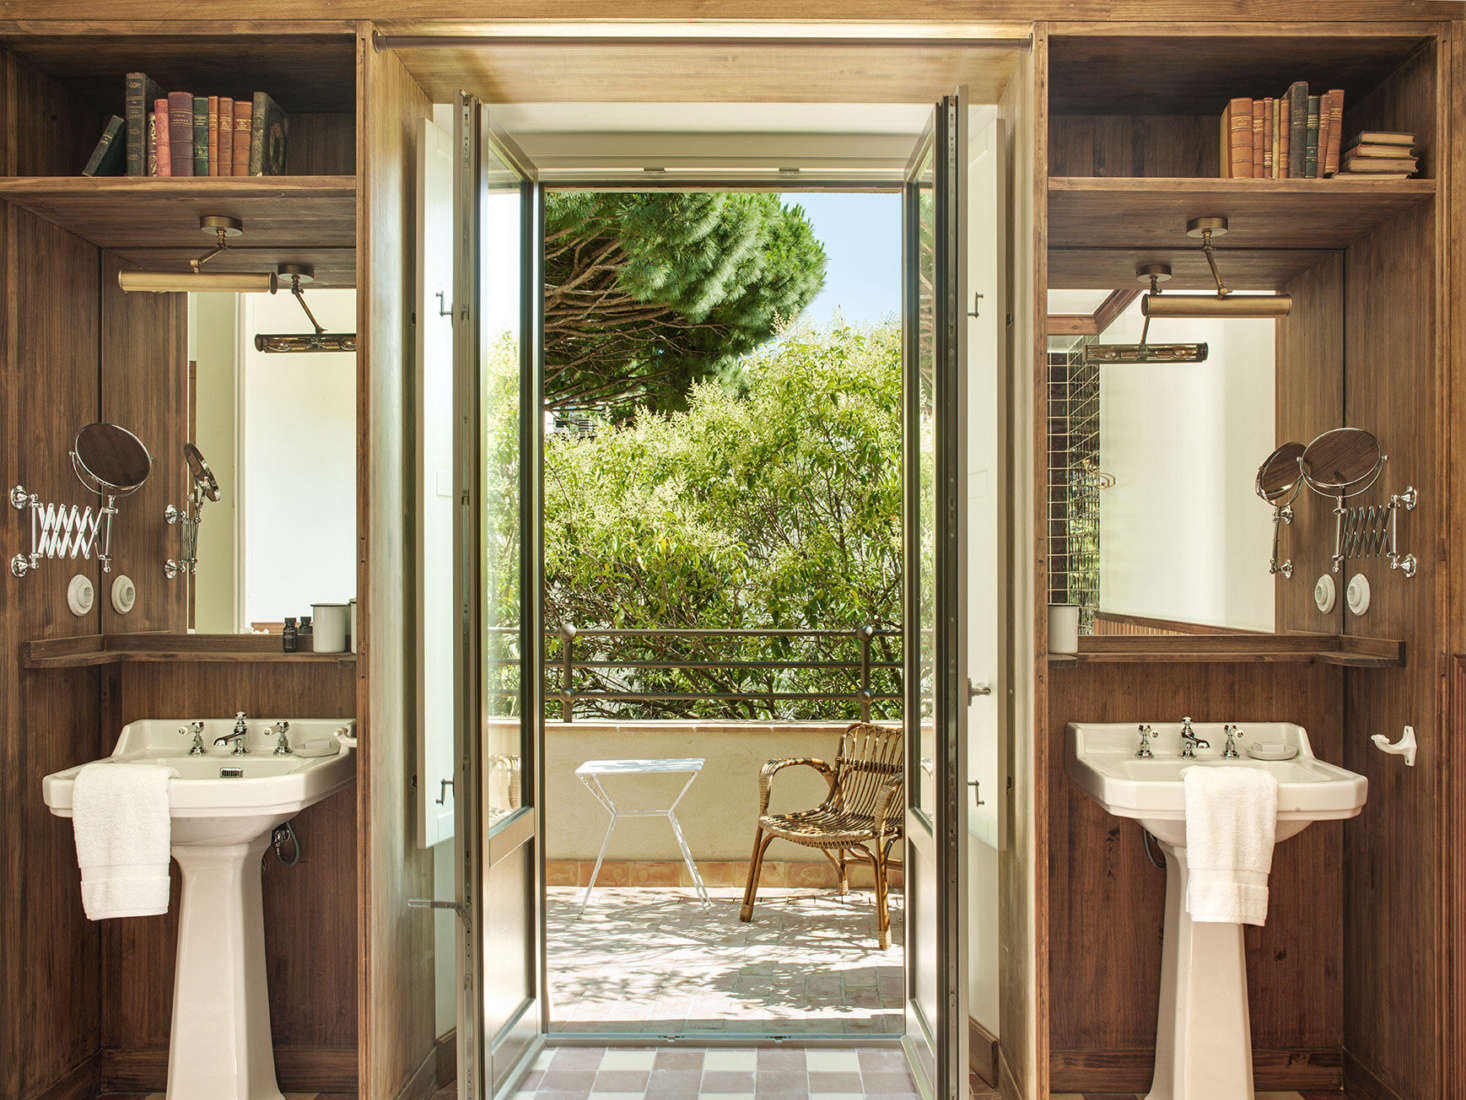 In the Valentina suite, twin sinks flank the door to a private patio.